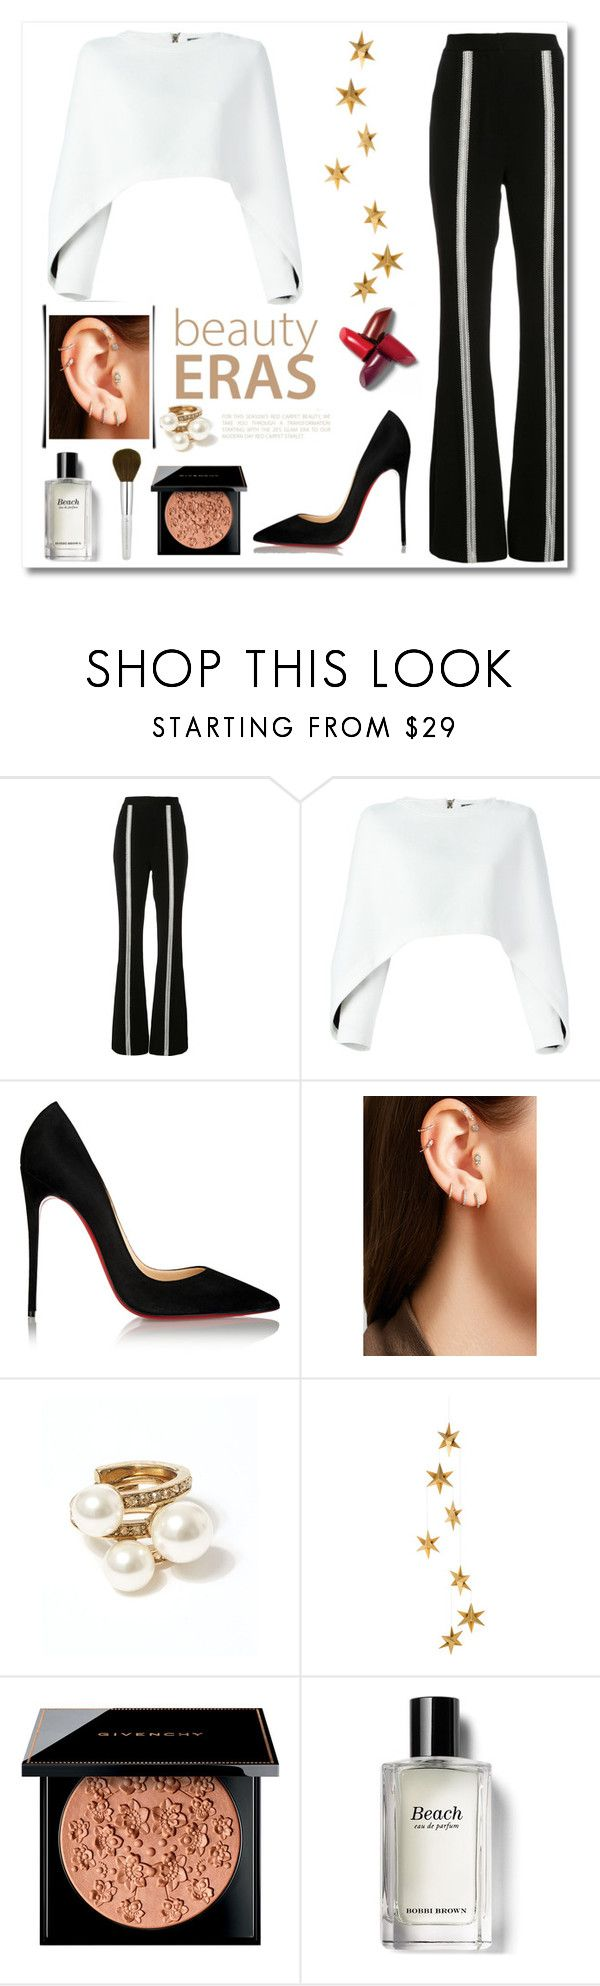 """The Ellen Show : Lined Perfection"" by swankswanker ❤ liked on Polyvore featuring Jonathan Simkhai, Balmain, Christian Louboutin, Maria Tash, Oscar de la Renta, Livingly, Givenchy and Bobbi Brown Cosmetics"